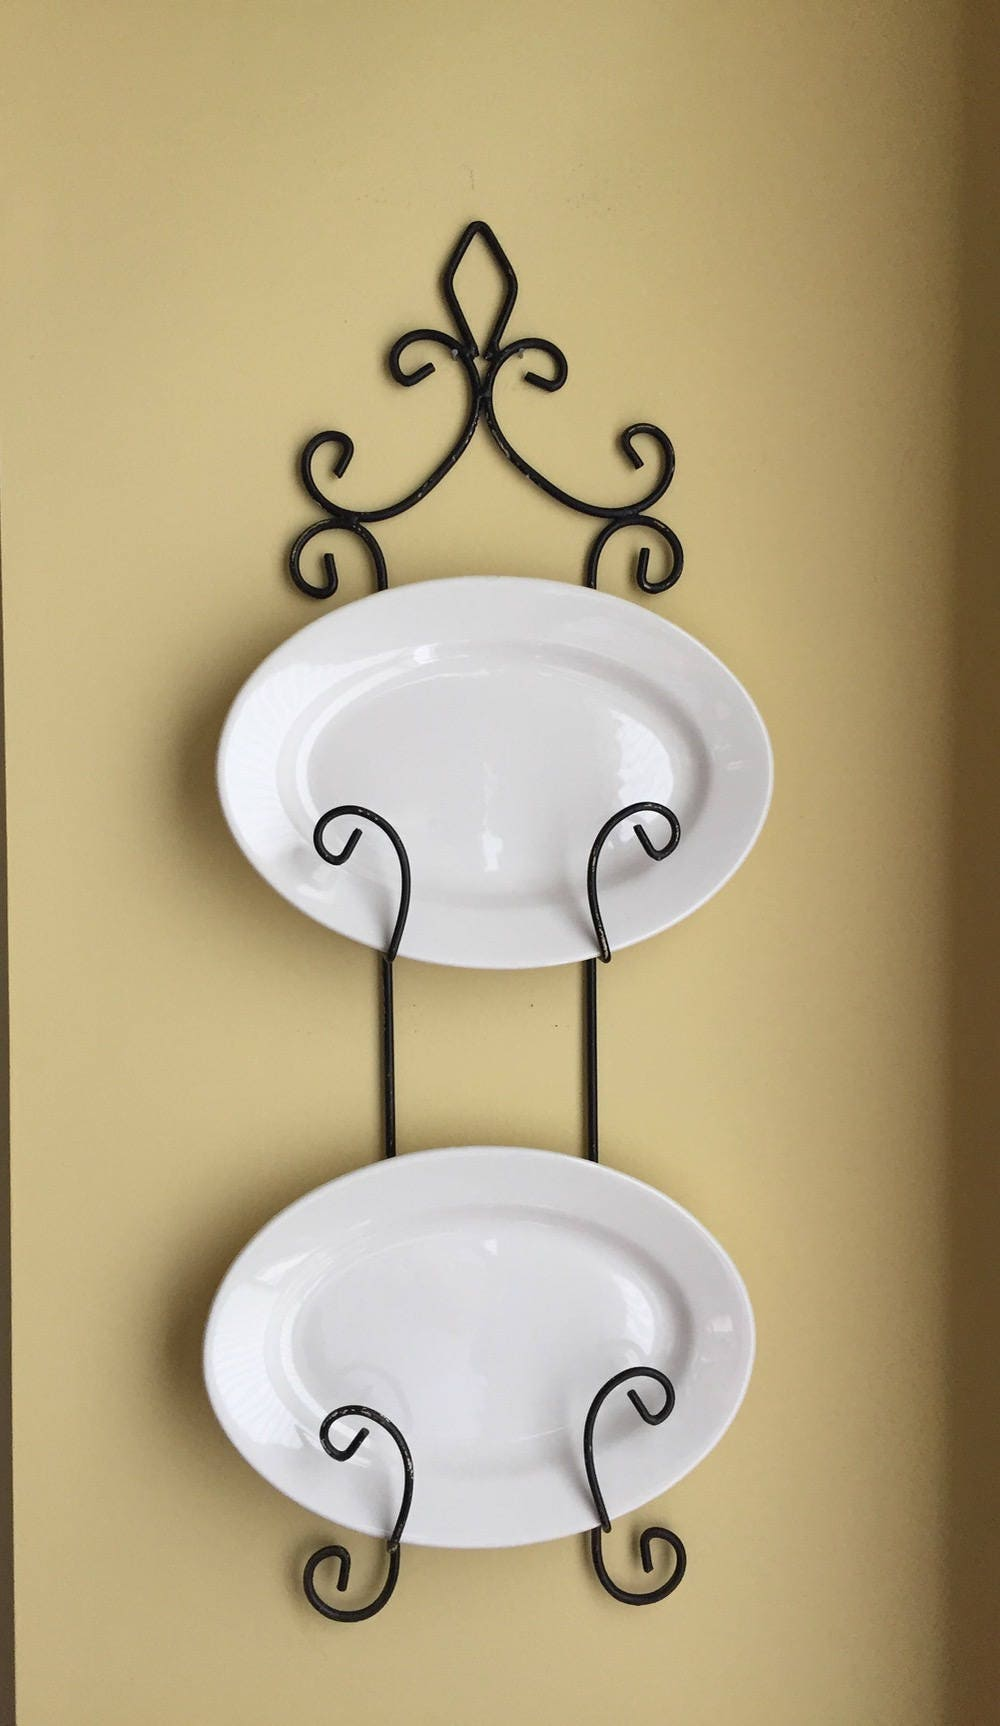 Iron Plate Rack Wall Platter Display Rack Black Chippy Paint Wall Mount Holds 2 Plates French Country Cottage Farmhouse Kitchen